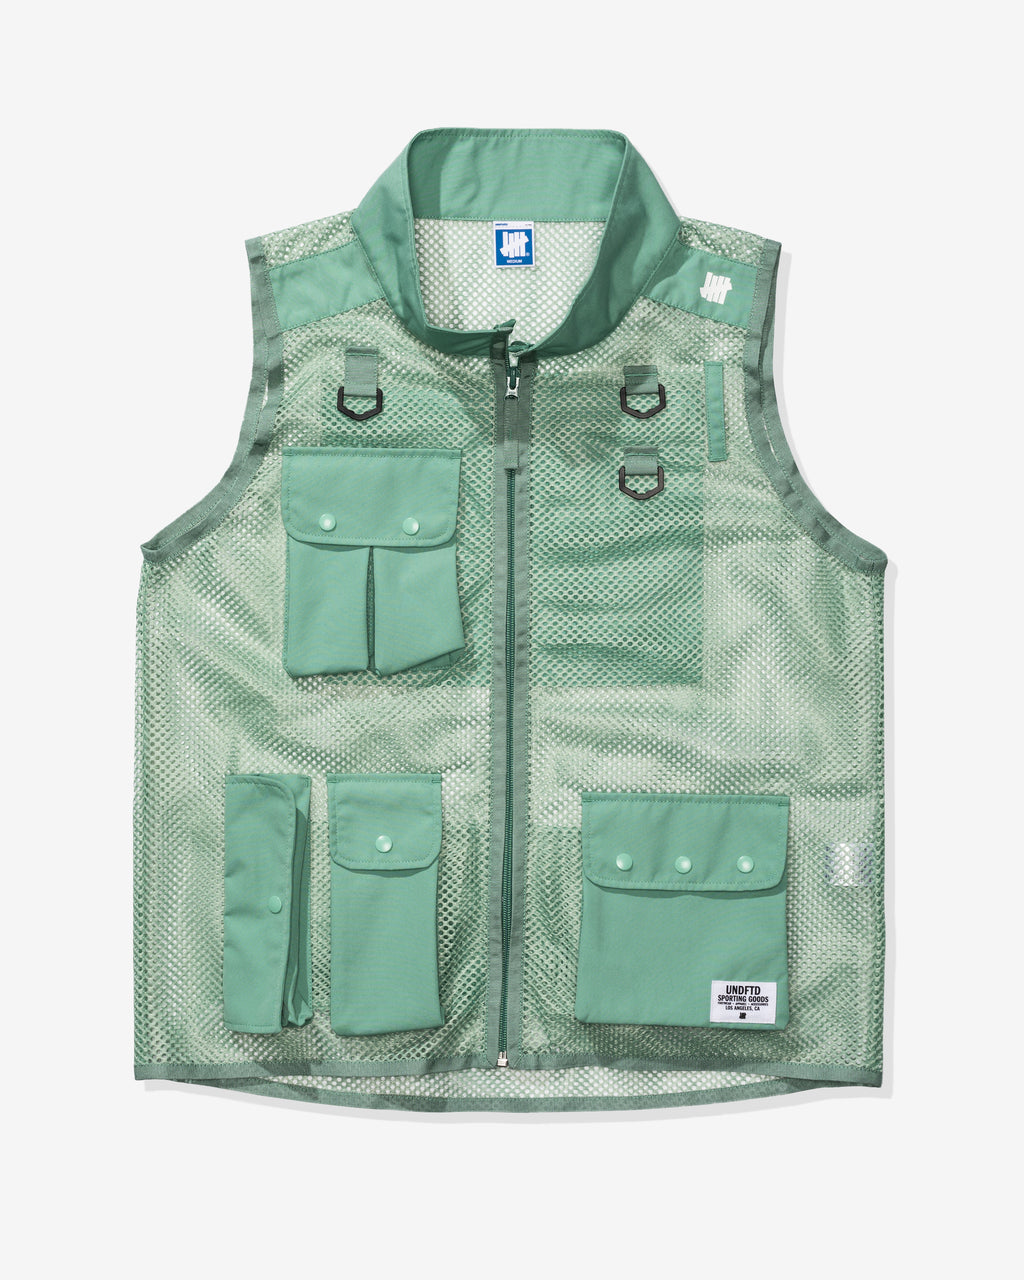 UNDEFEATED SPORTING GOODS VEST - LIGHT OLIVE